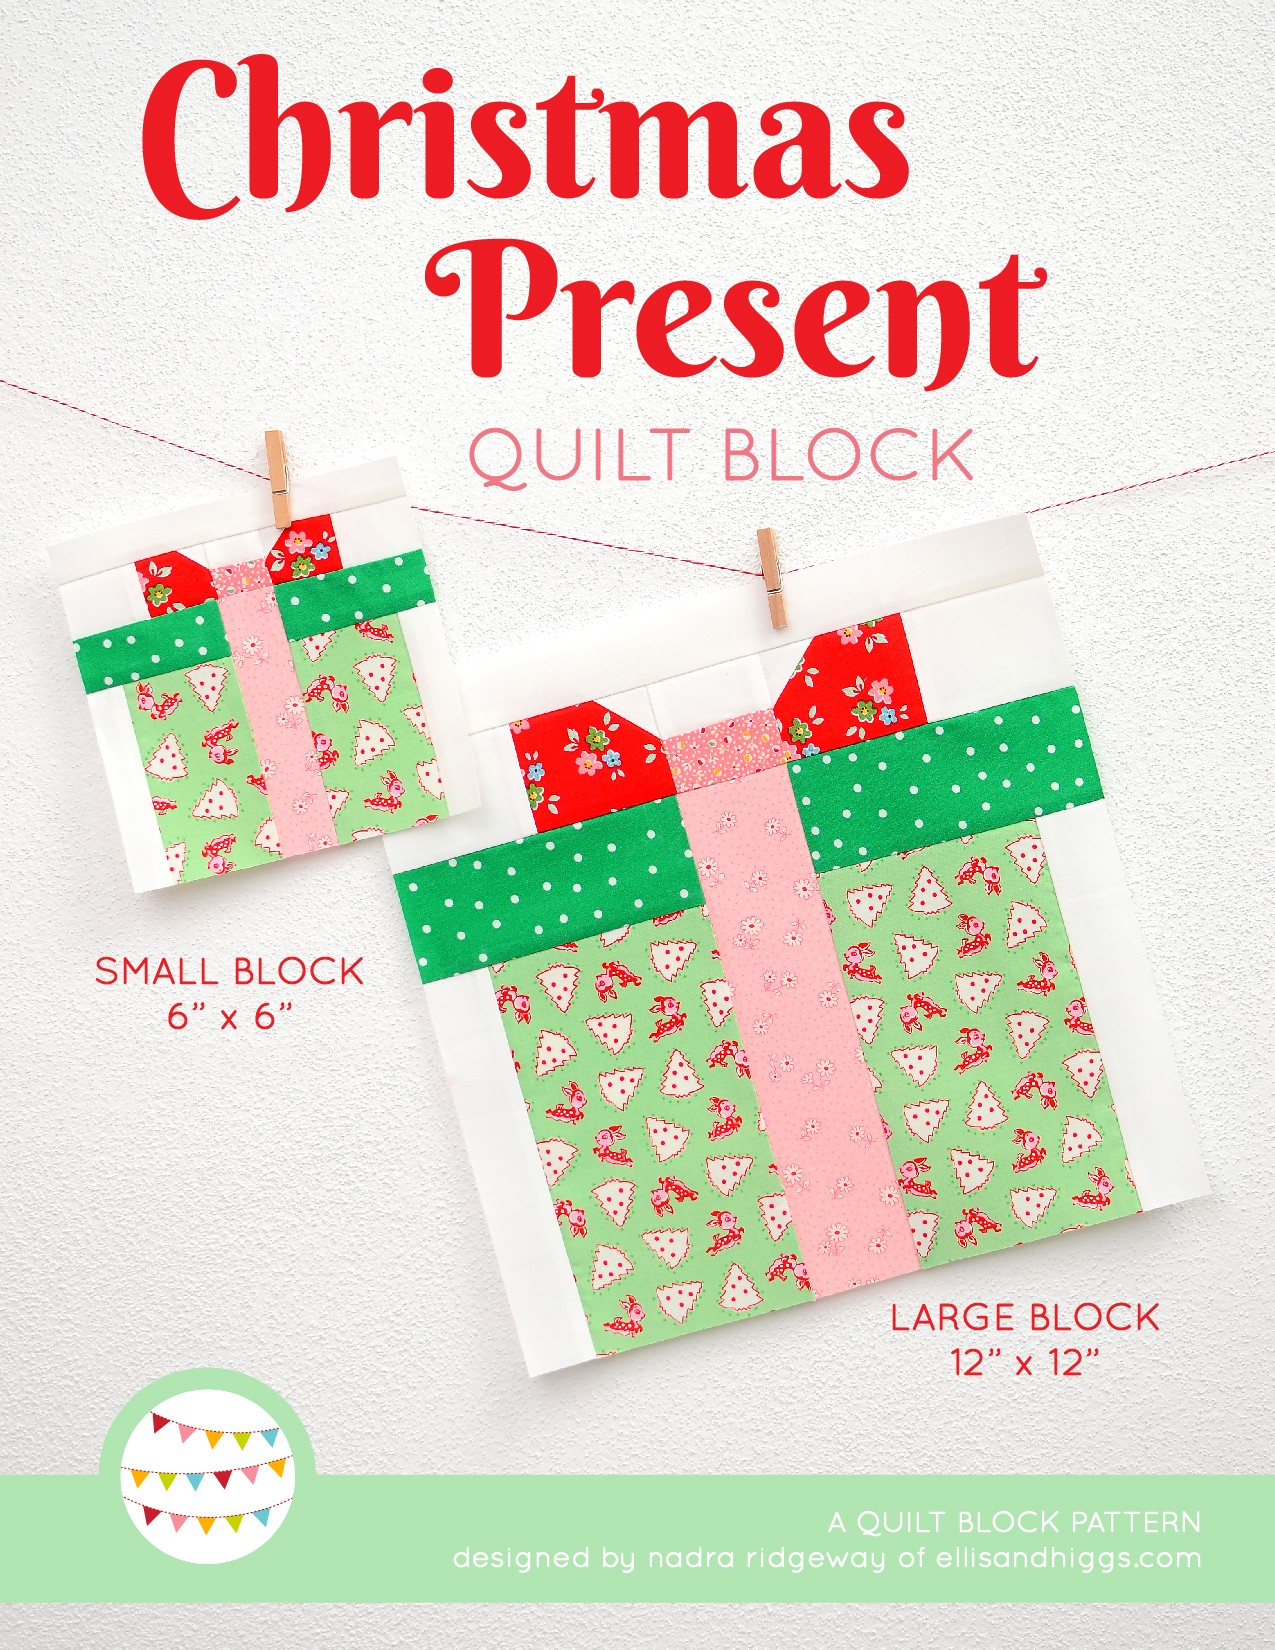 Christmas Present quilt block in two sizes hanging on a wall - Christmas quilt pattern